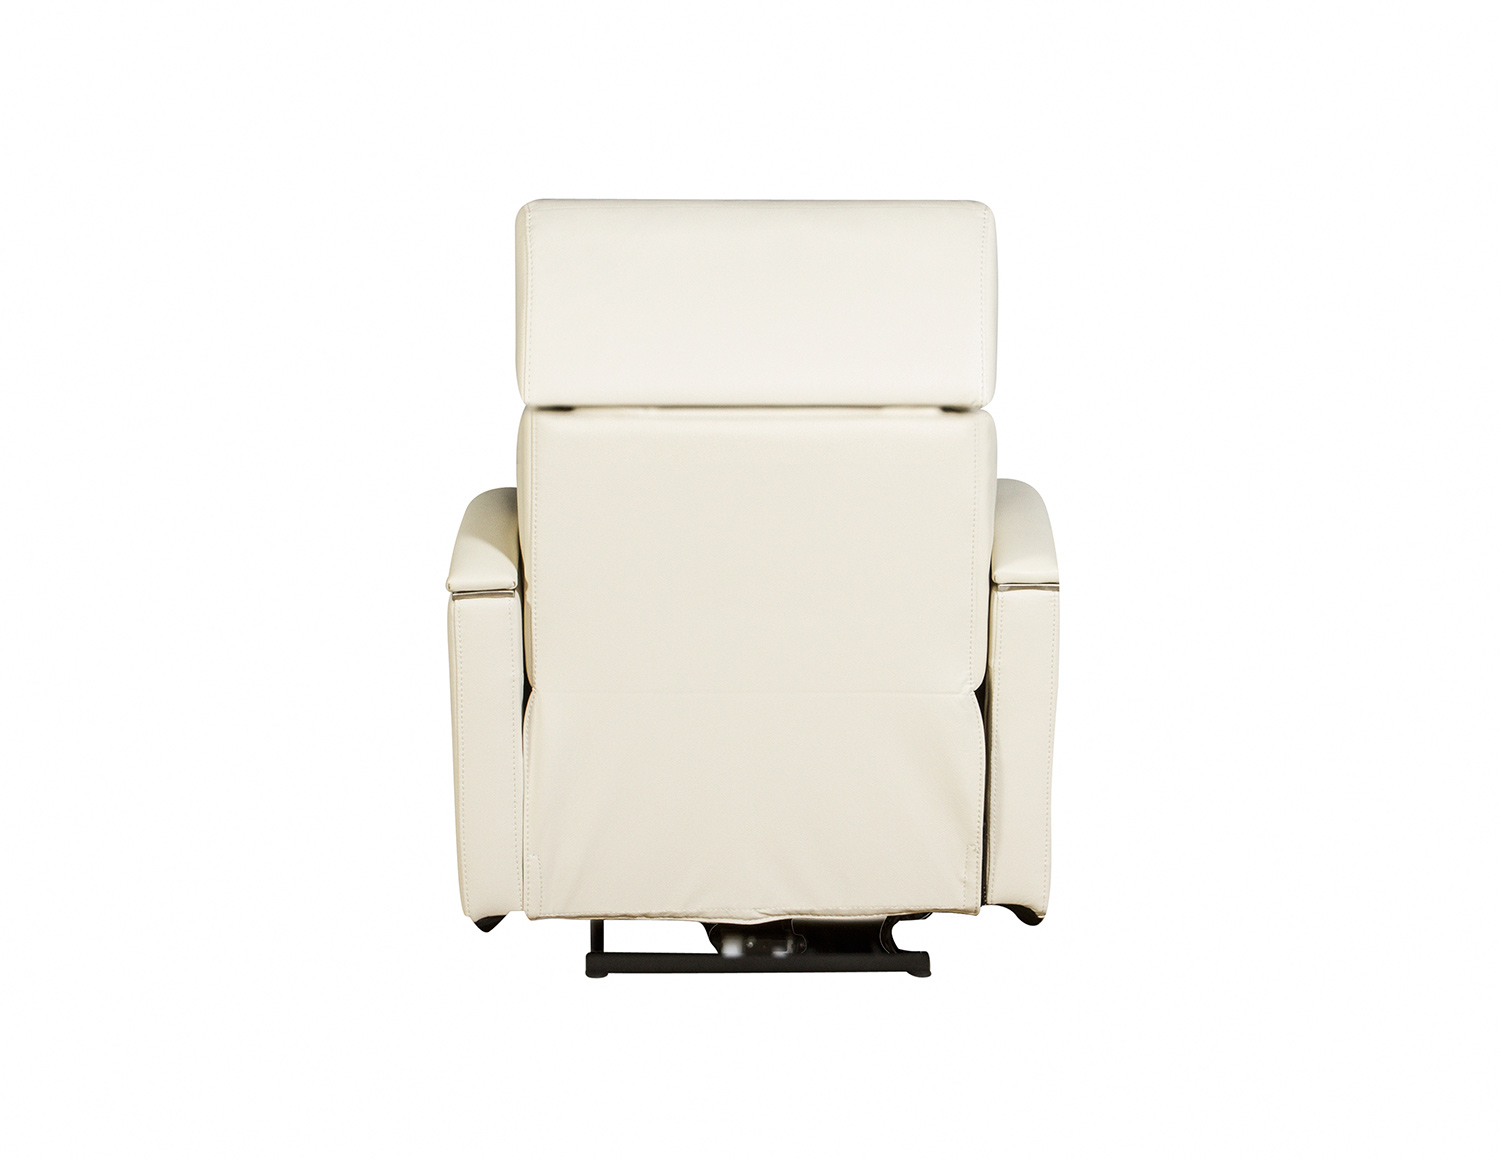 Barcalounger Cosmo Power Recliner Chair with Power Head Rest - Cashmere White/Leather Match